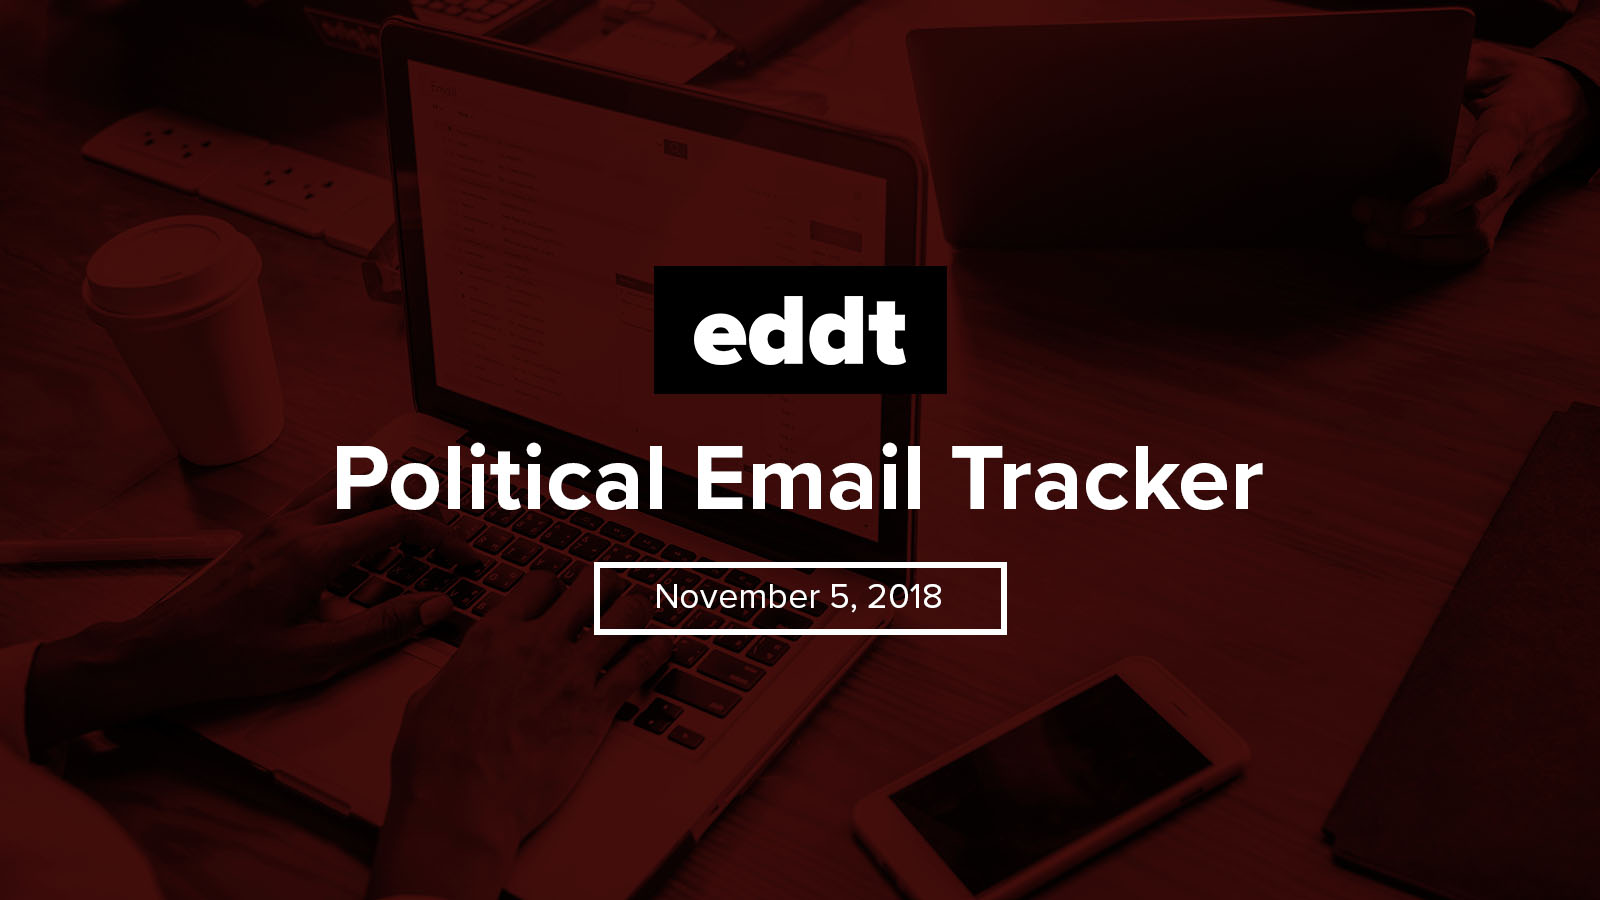 Political Email Tracker - November 5, 2018